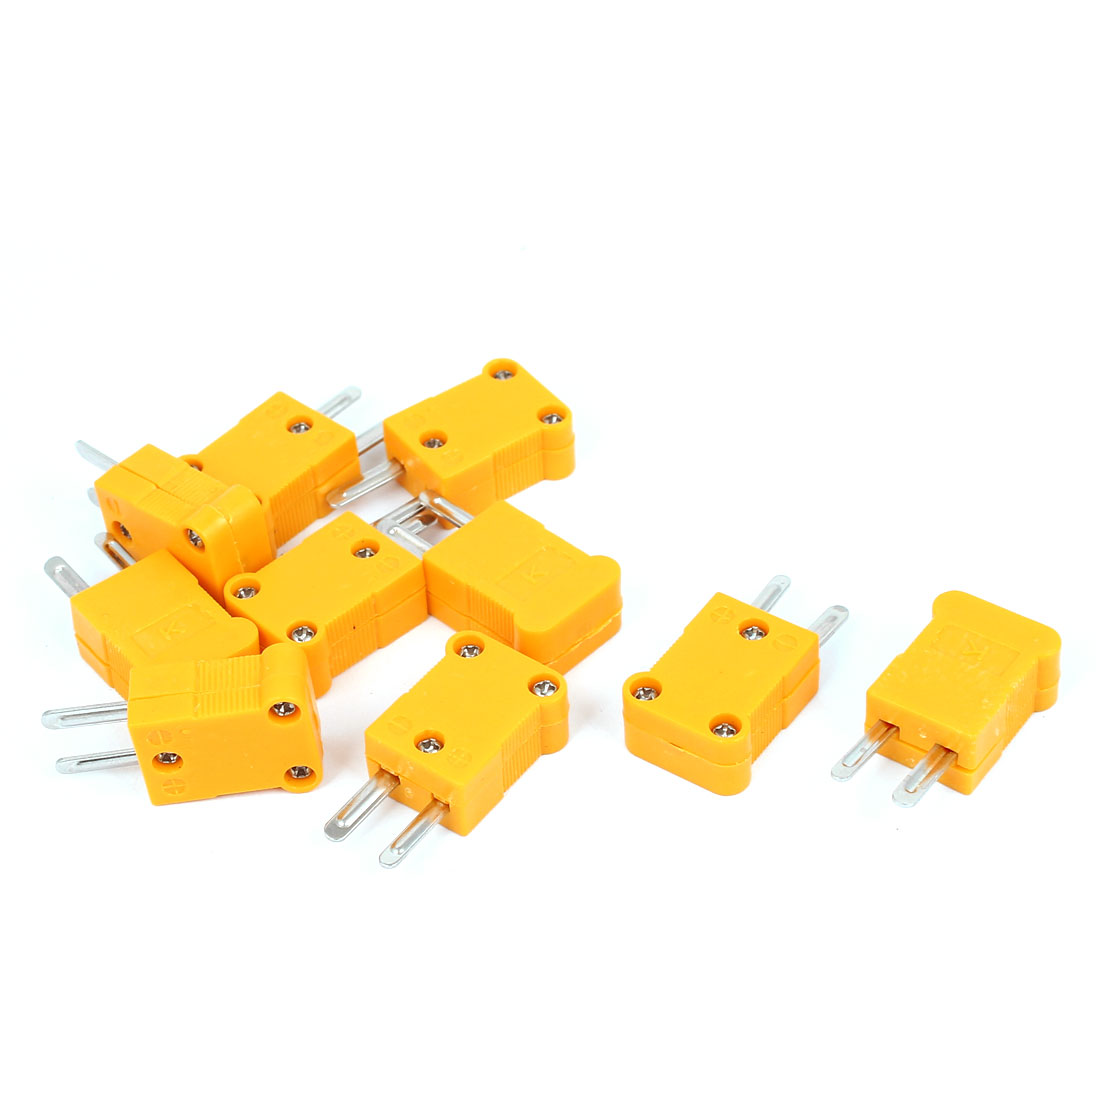 10pcs K Type Thermocouple Temperature Sensor Plug Wire Cable Male Connector Yellow